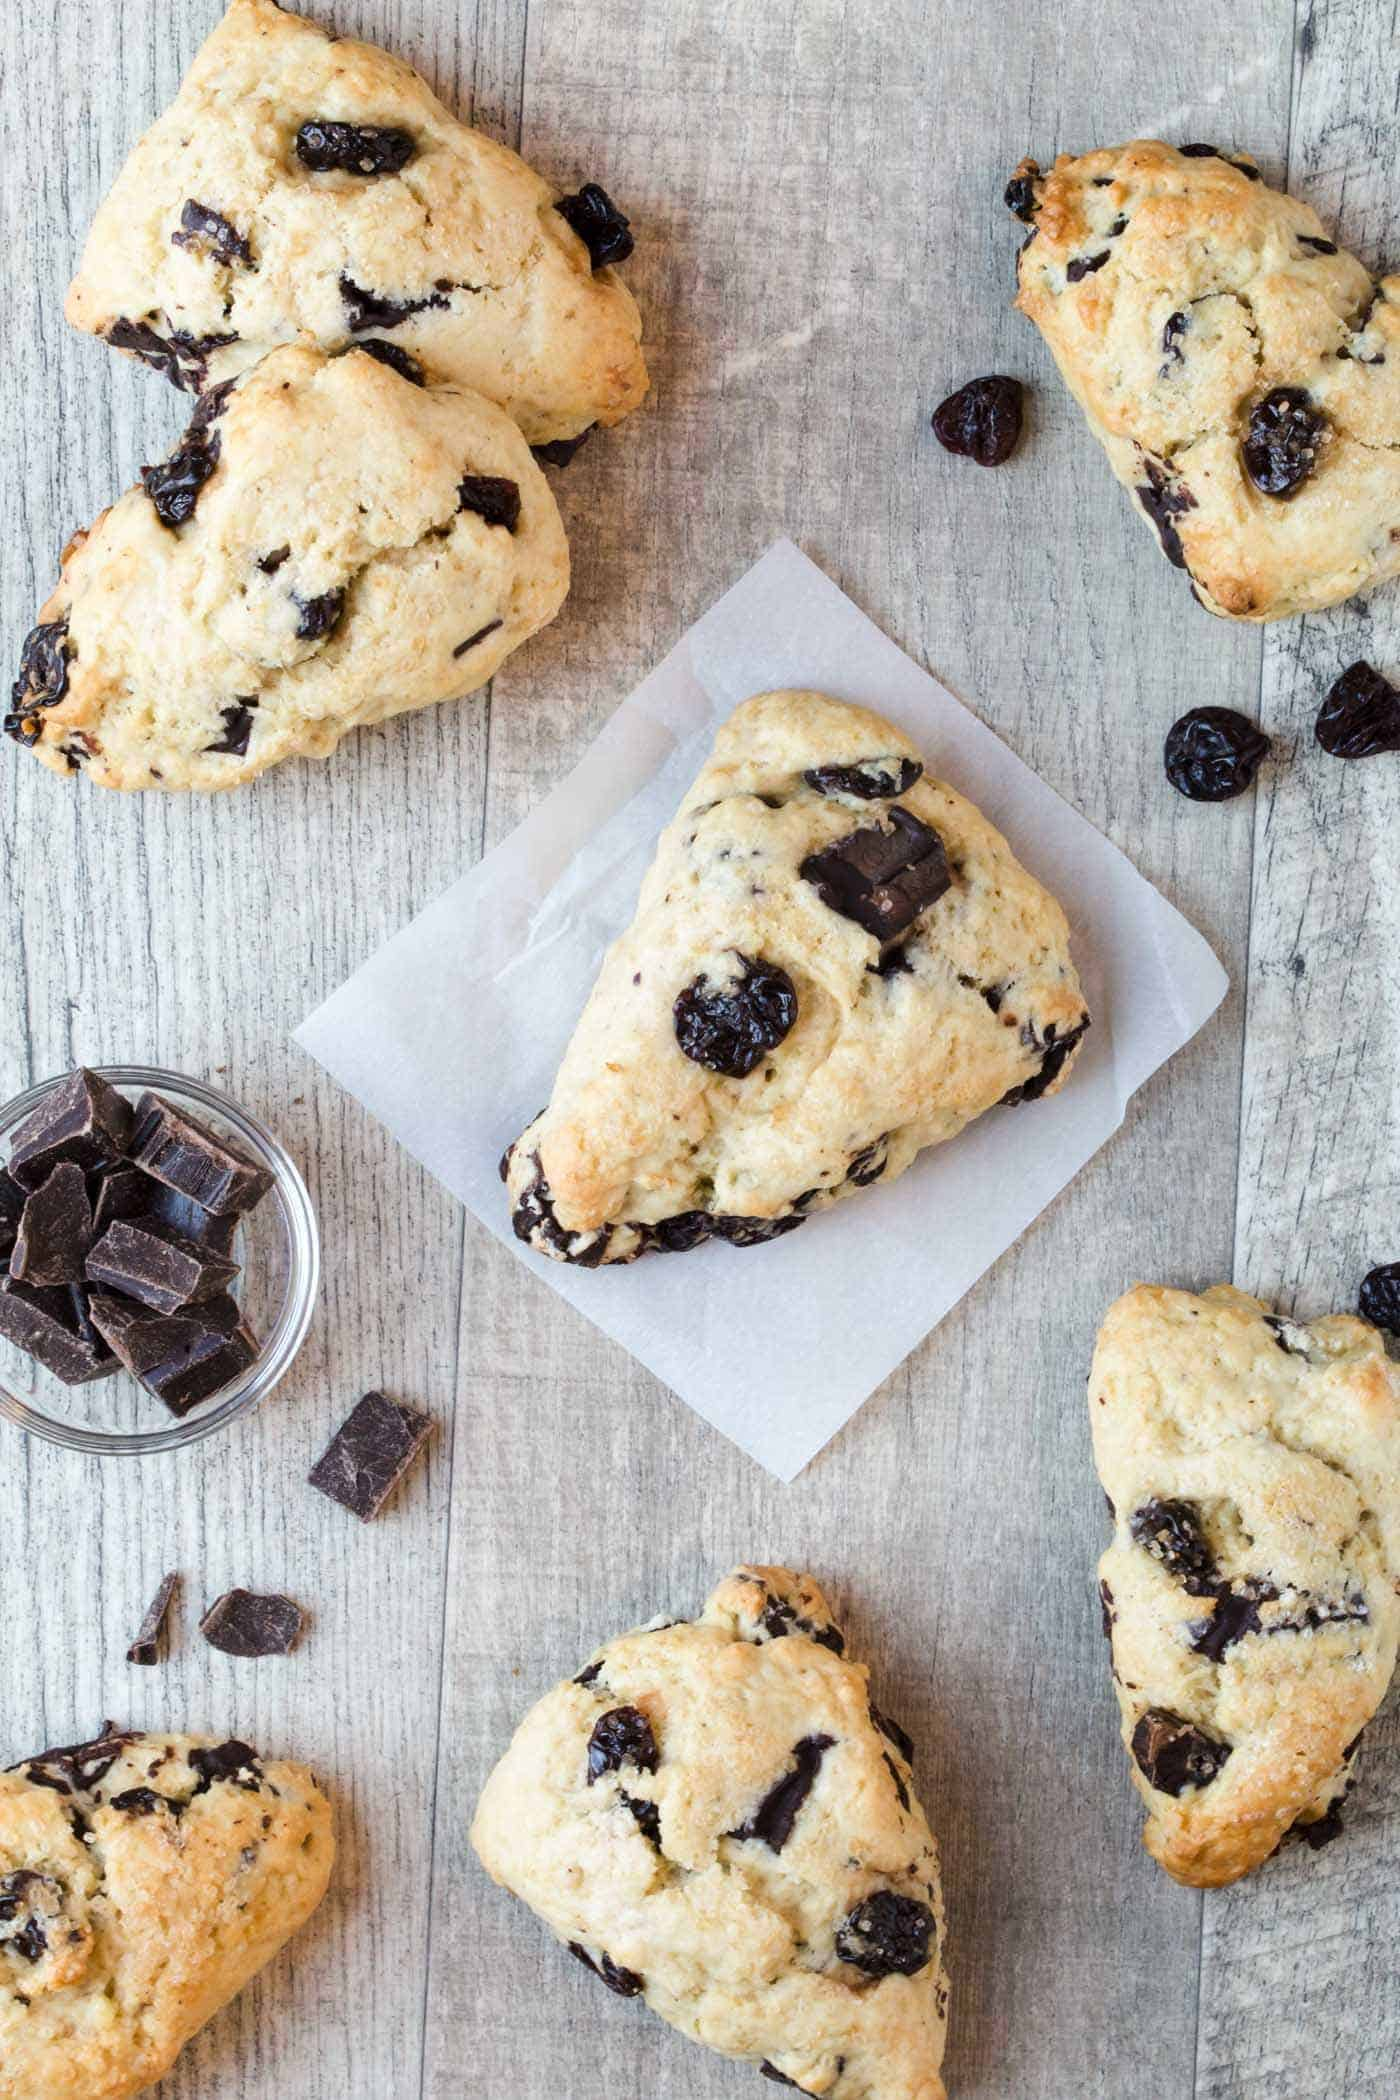 Seven Dark Chocolate Cherry Scones on a wooden board surrounded by dark chocolate chunks and dried cherries.